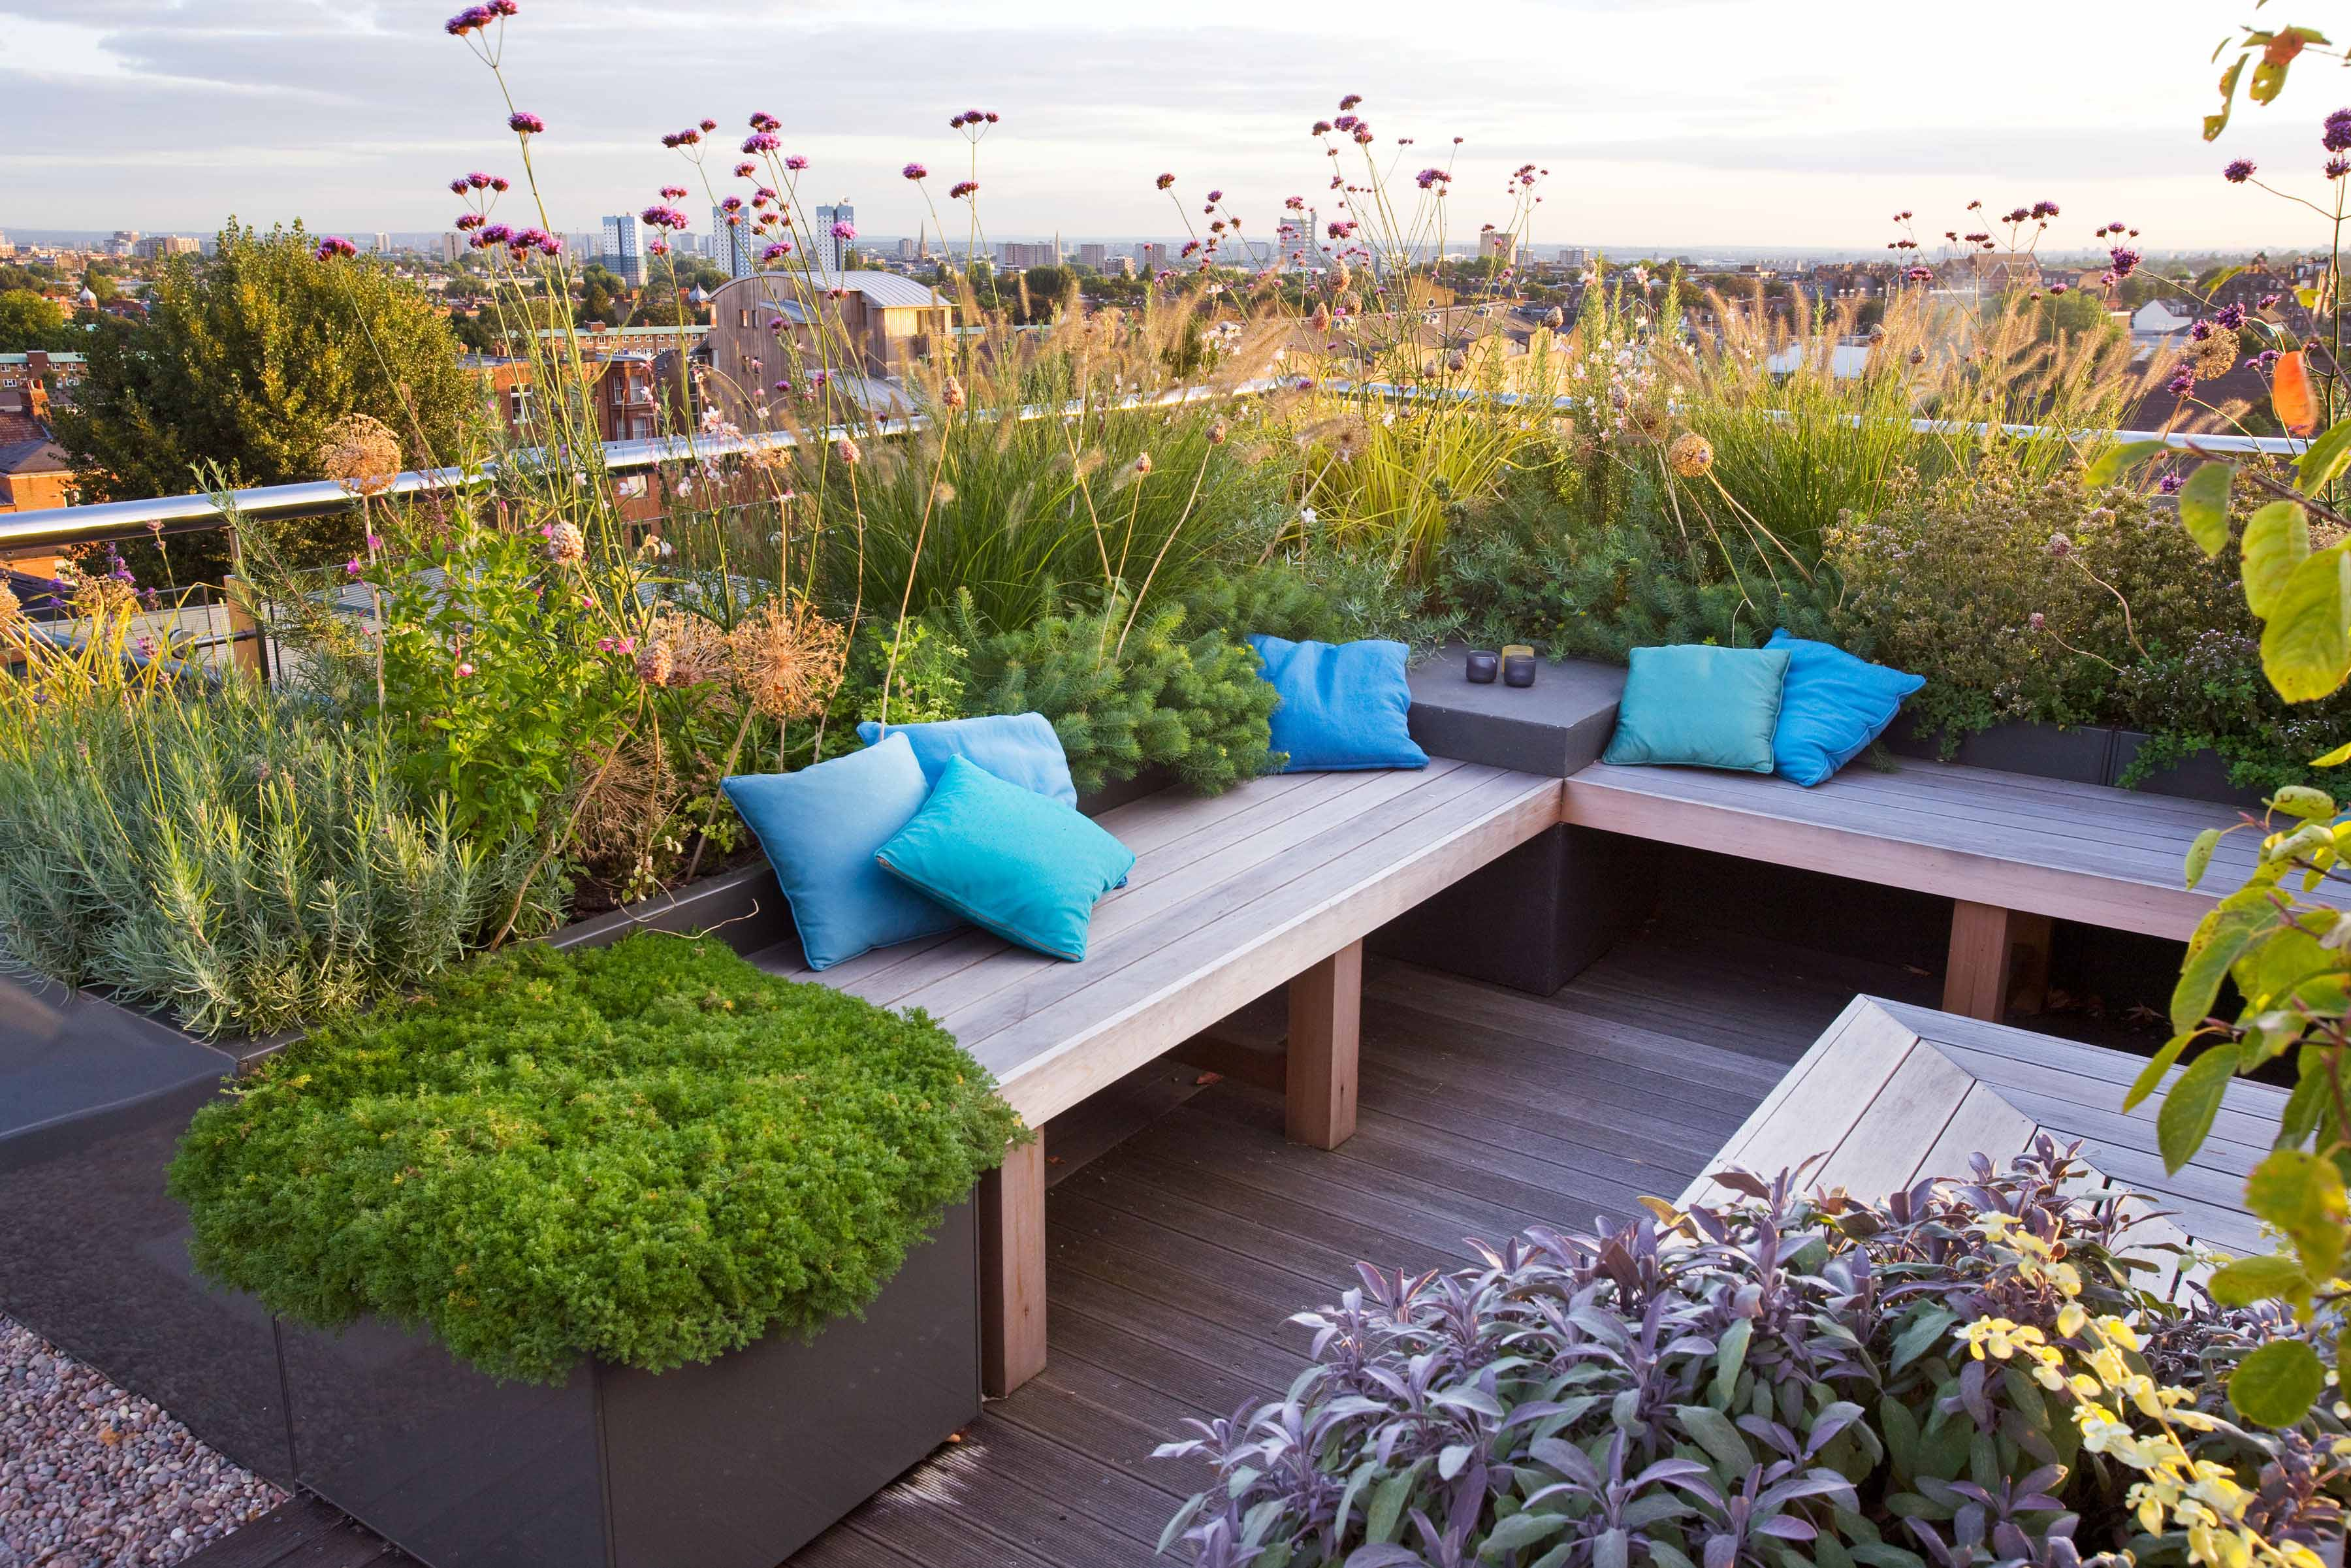 Rooftop seating and plants